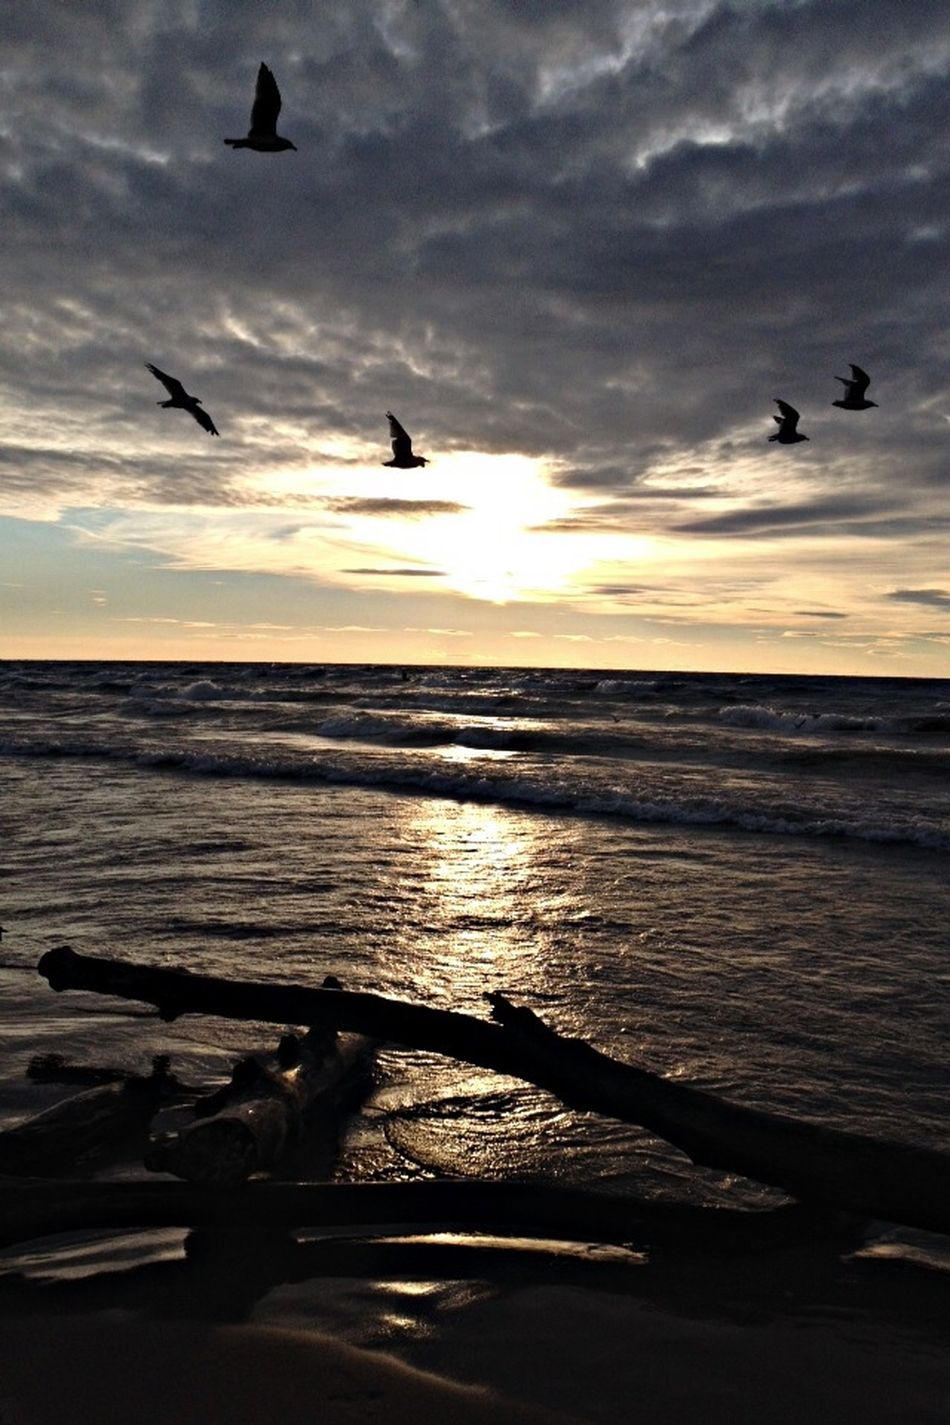 Sunset Summer Birds I took this while on a camping trip with friends. The birds just flew in front of my camera, almost like they knew it would create the perfect picture